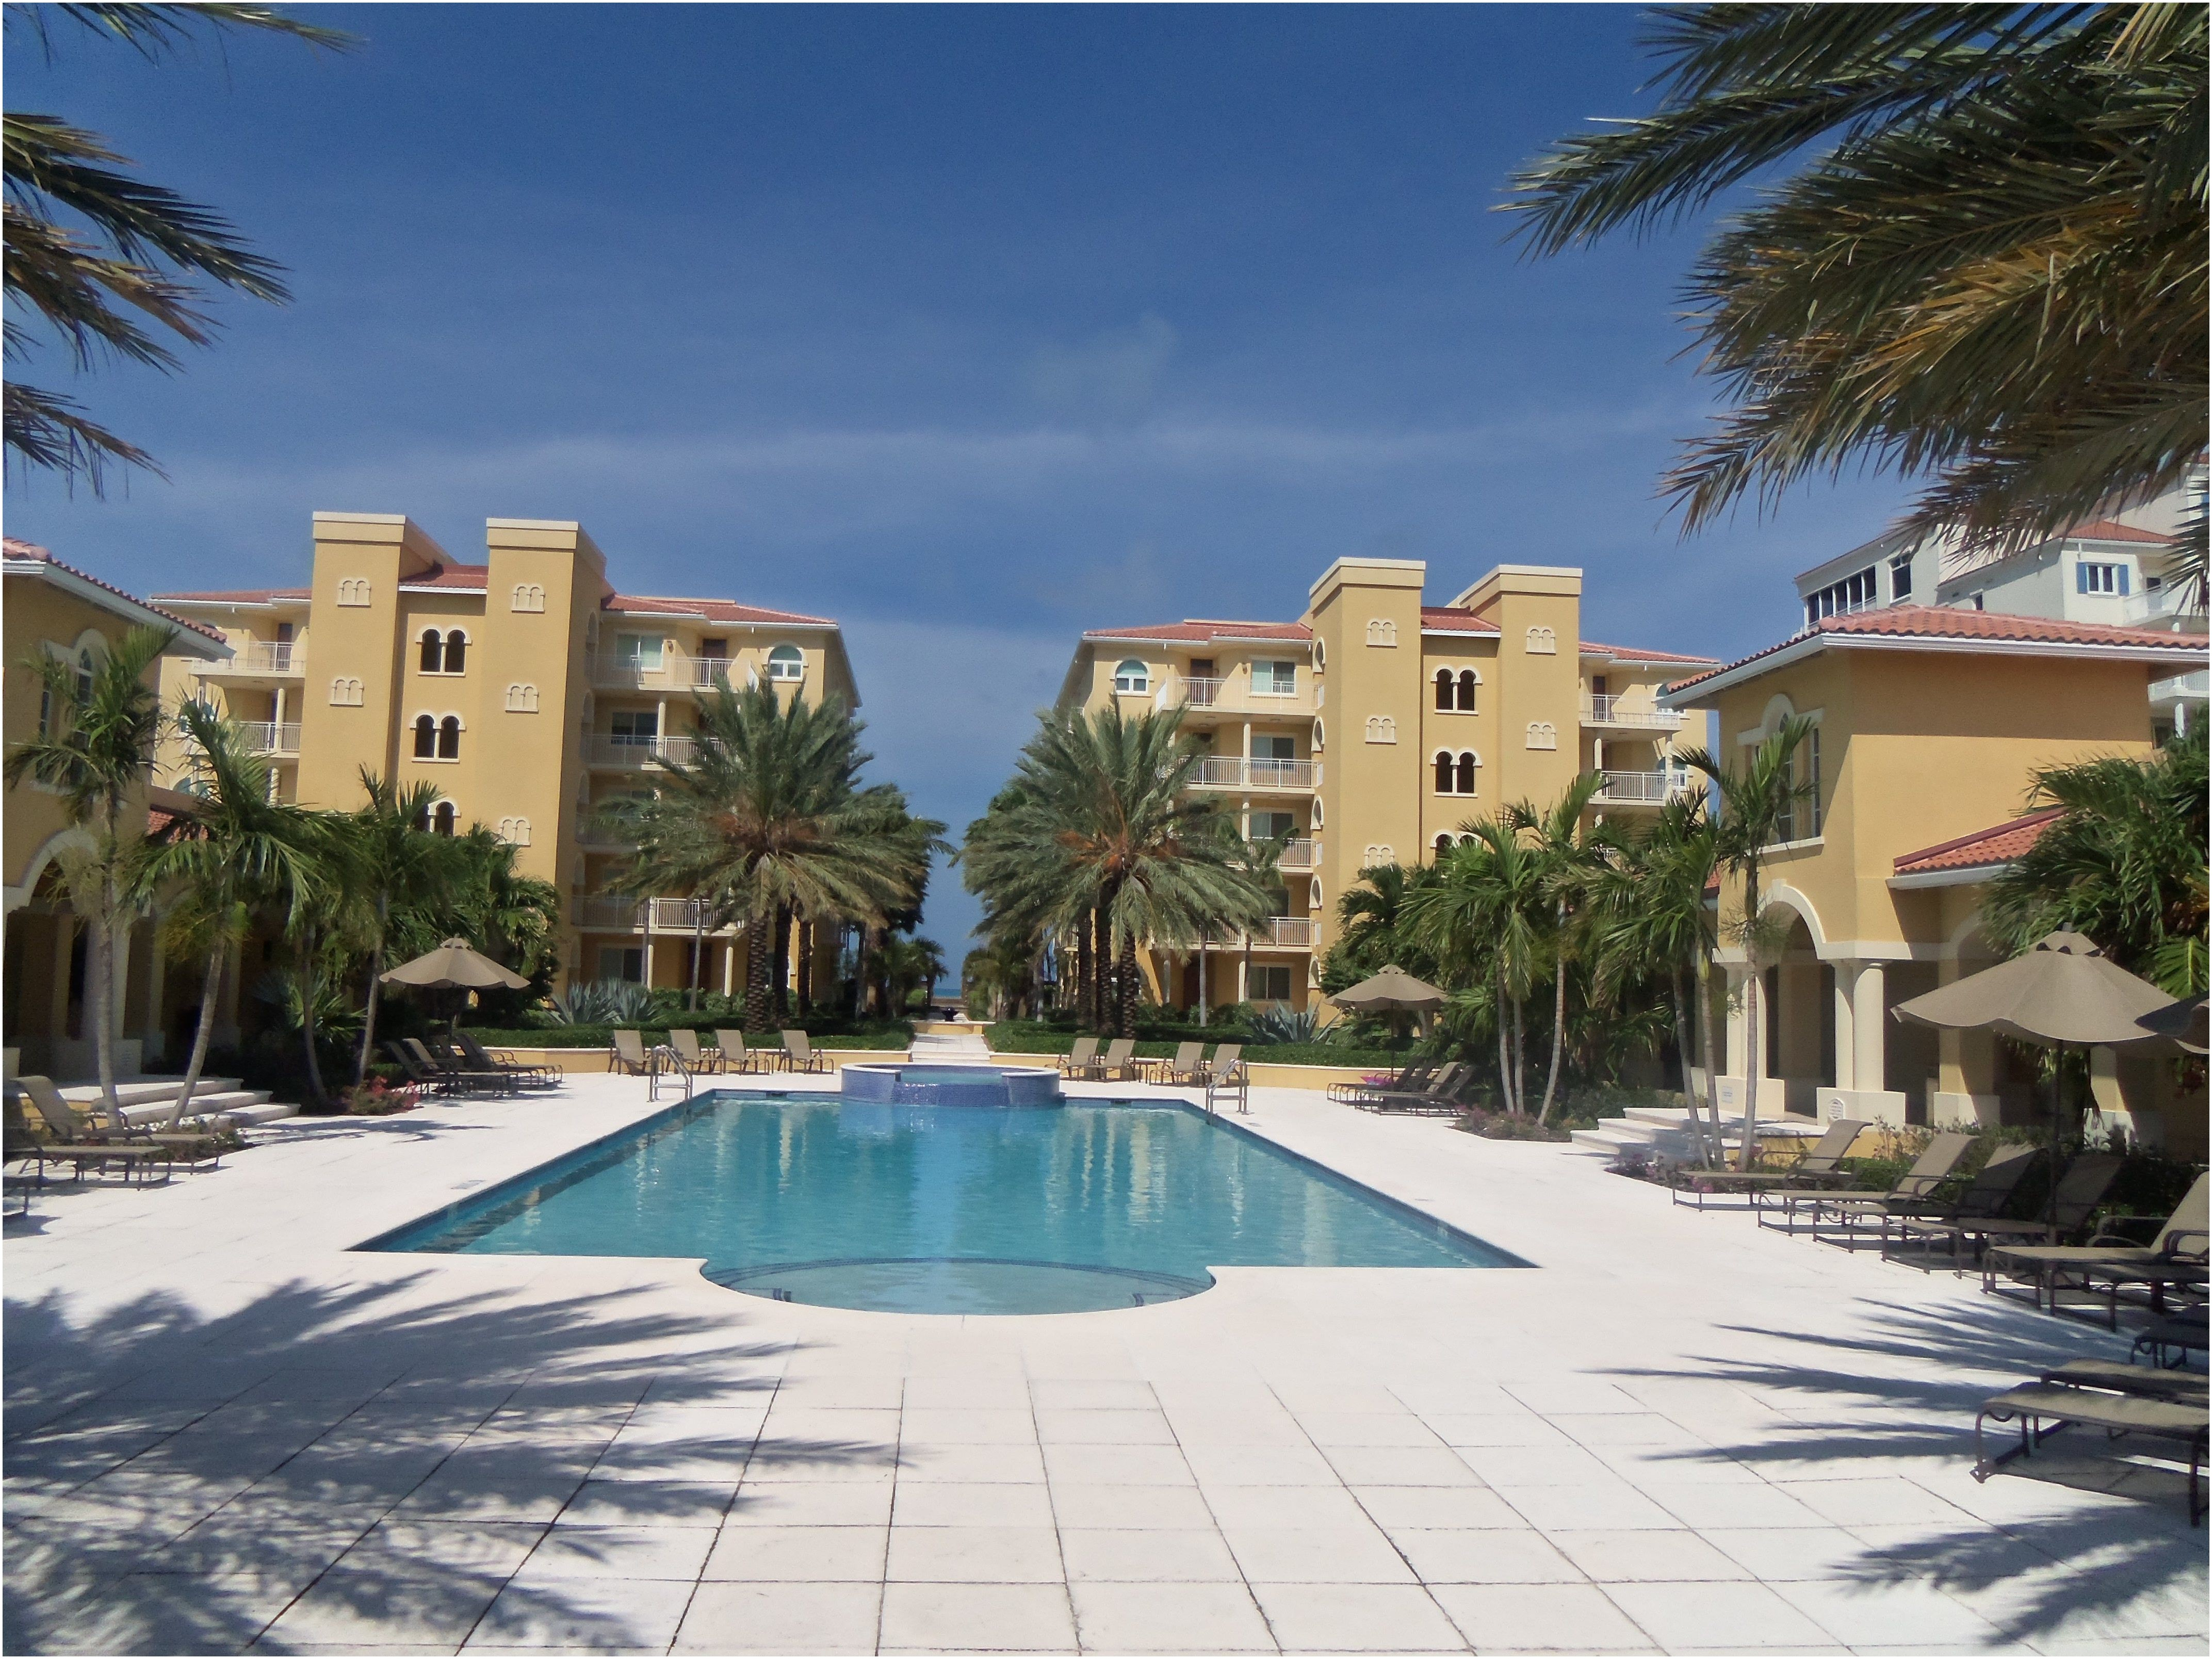 Beach Hotels In Italy Elegant the Tuscany Resort In Turks and Caicos